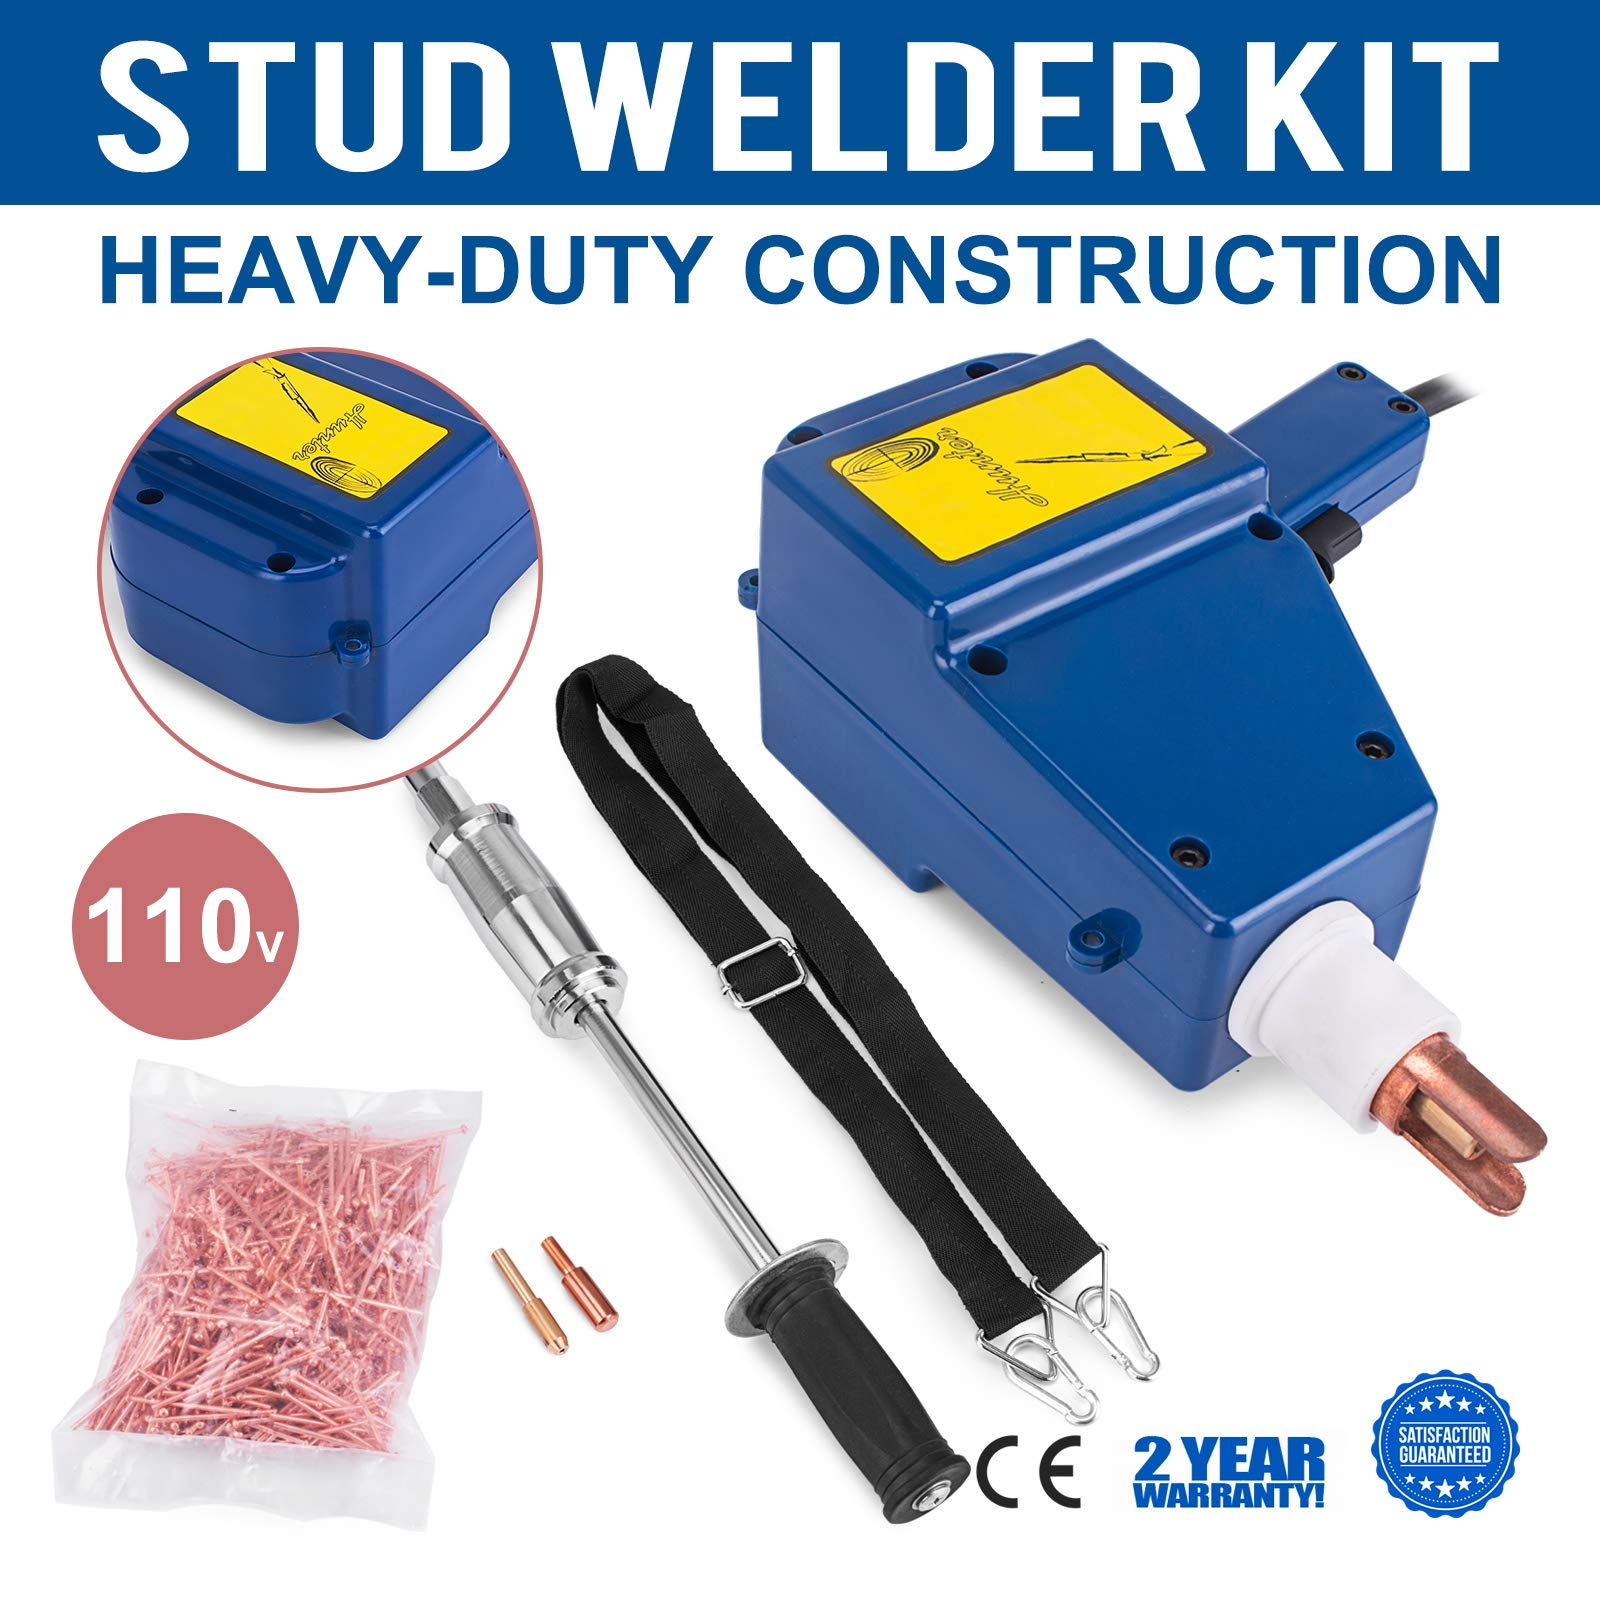 Mophprn Welder Stud Starter Kit 800 VA Spot Stud Welder Dent Puller Kit Electric Stud Welder Kit for Auto Body Repair